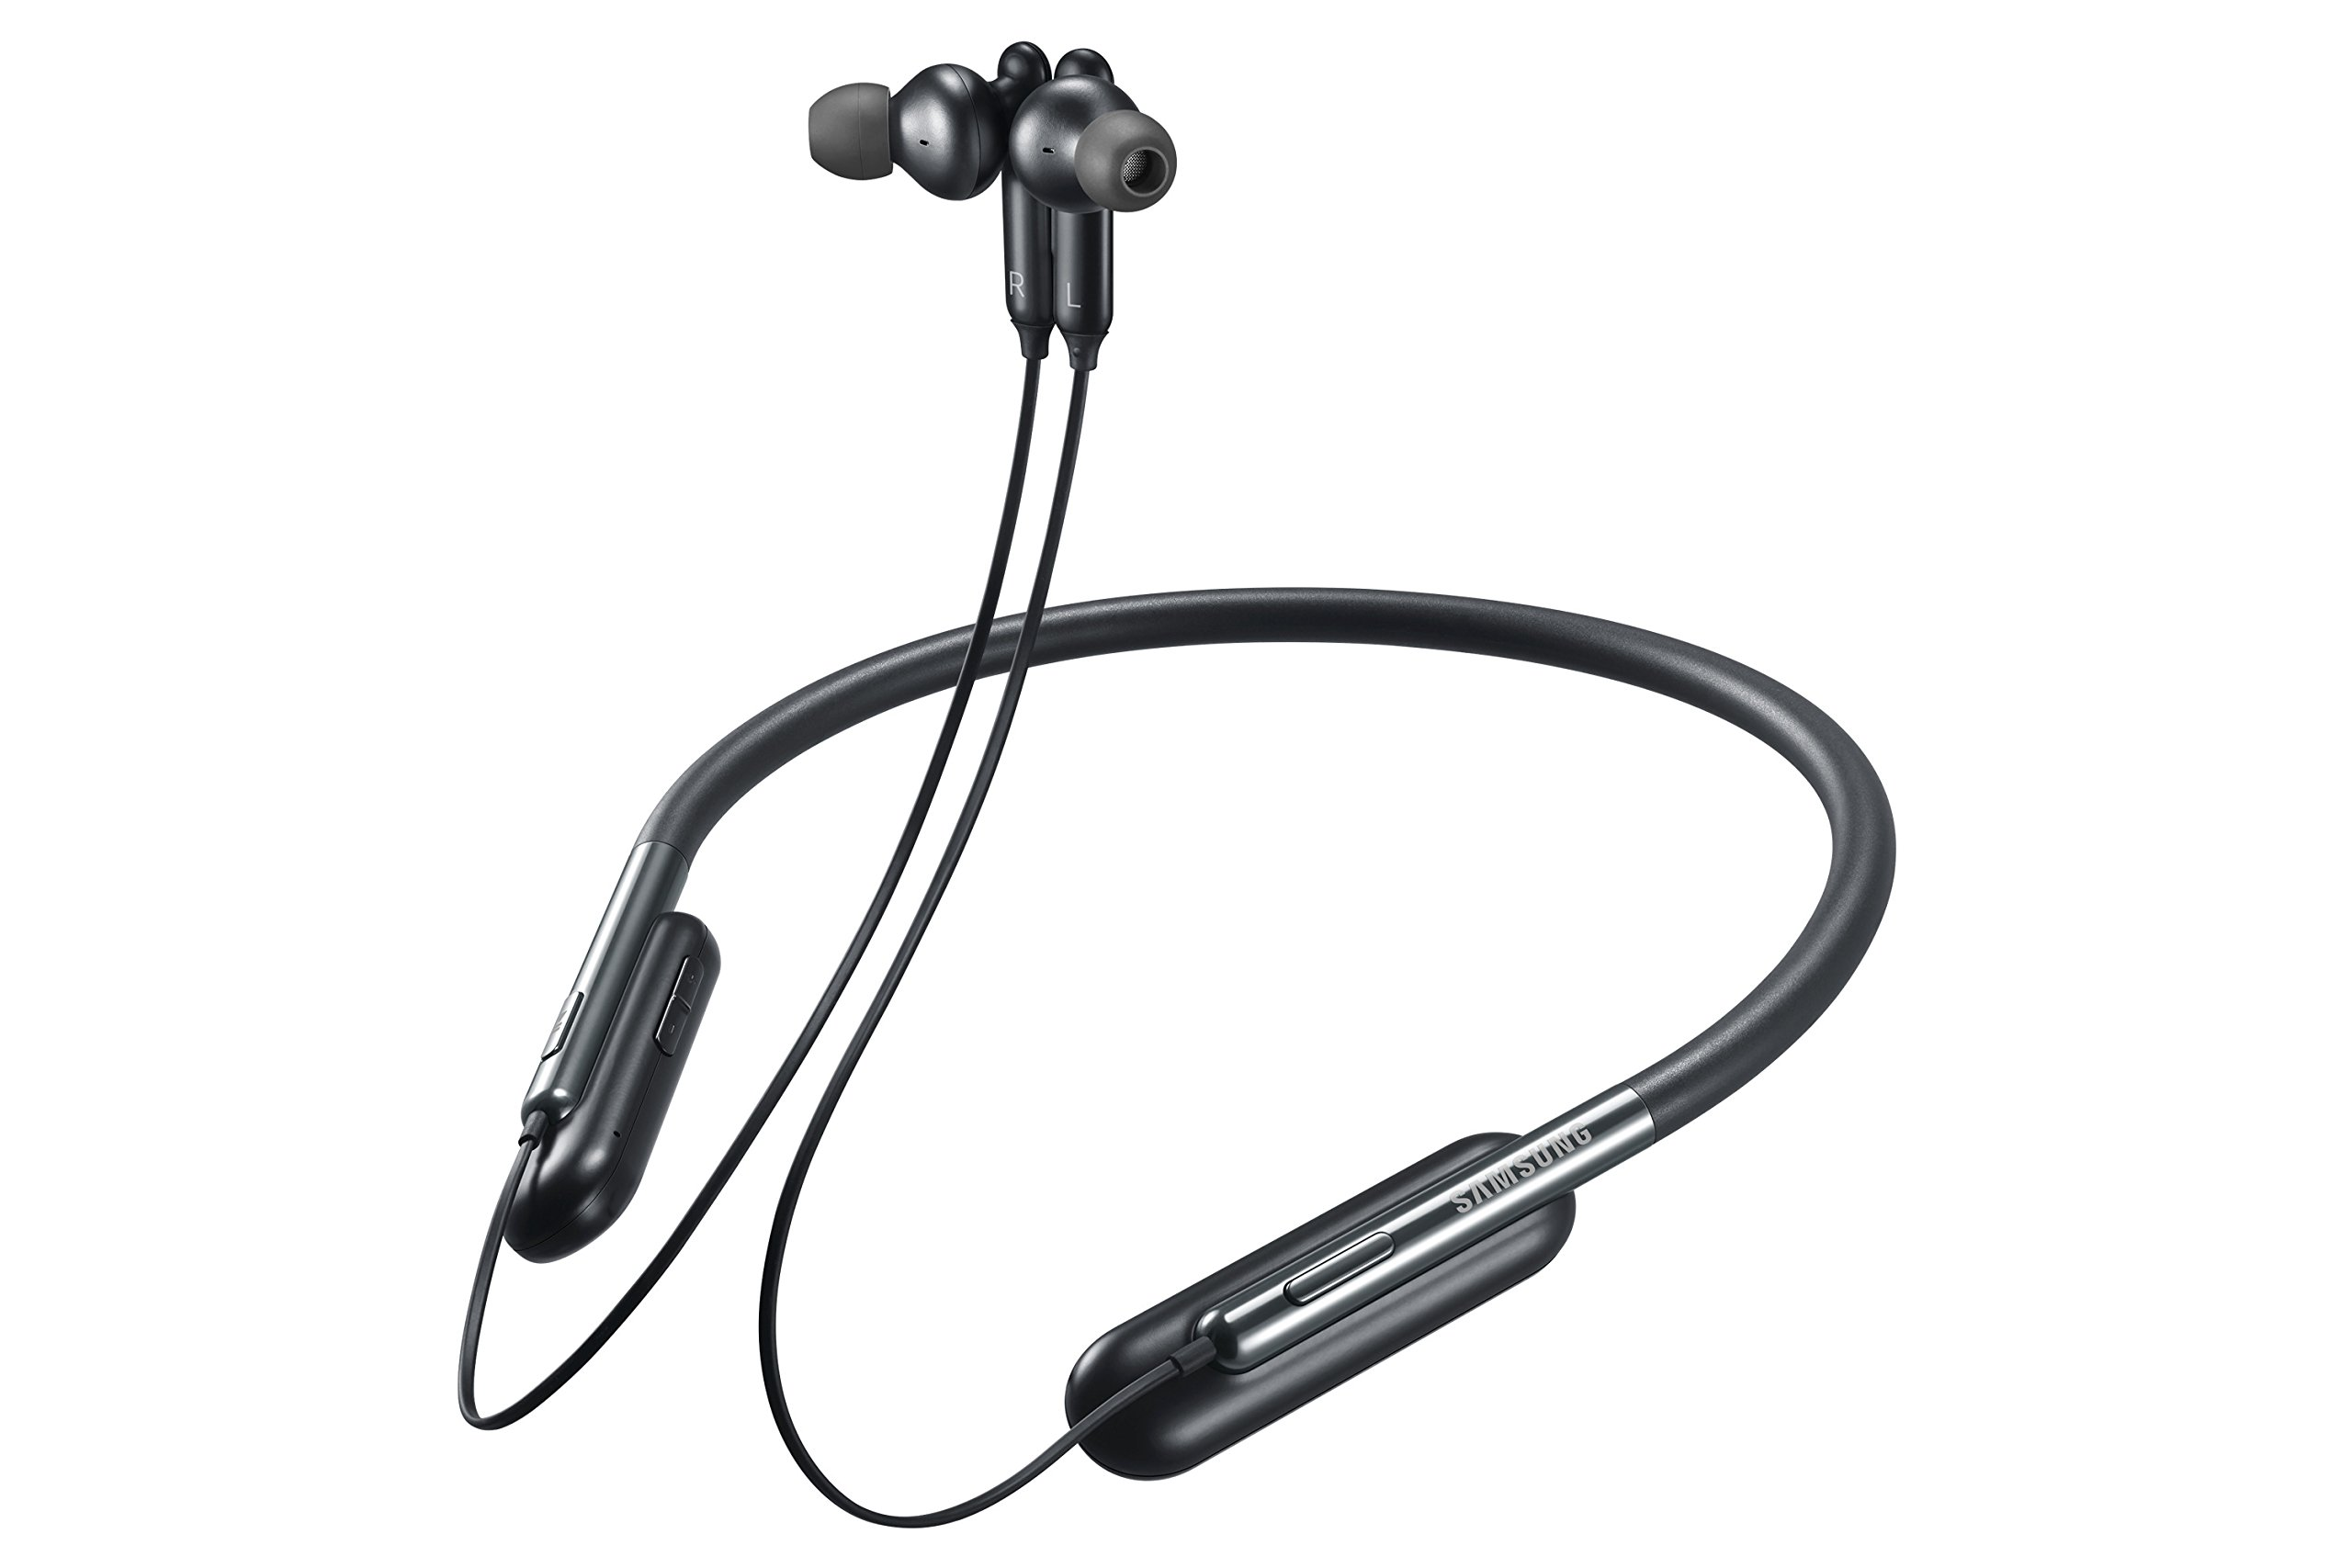 Samsung U Flex Bluetooth Wireless In-ear Flexible Headphones with Microphone (US Version with Warranty), Black